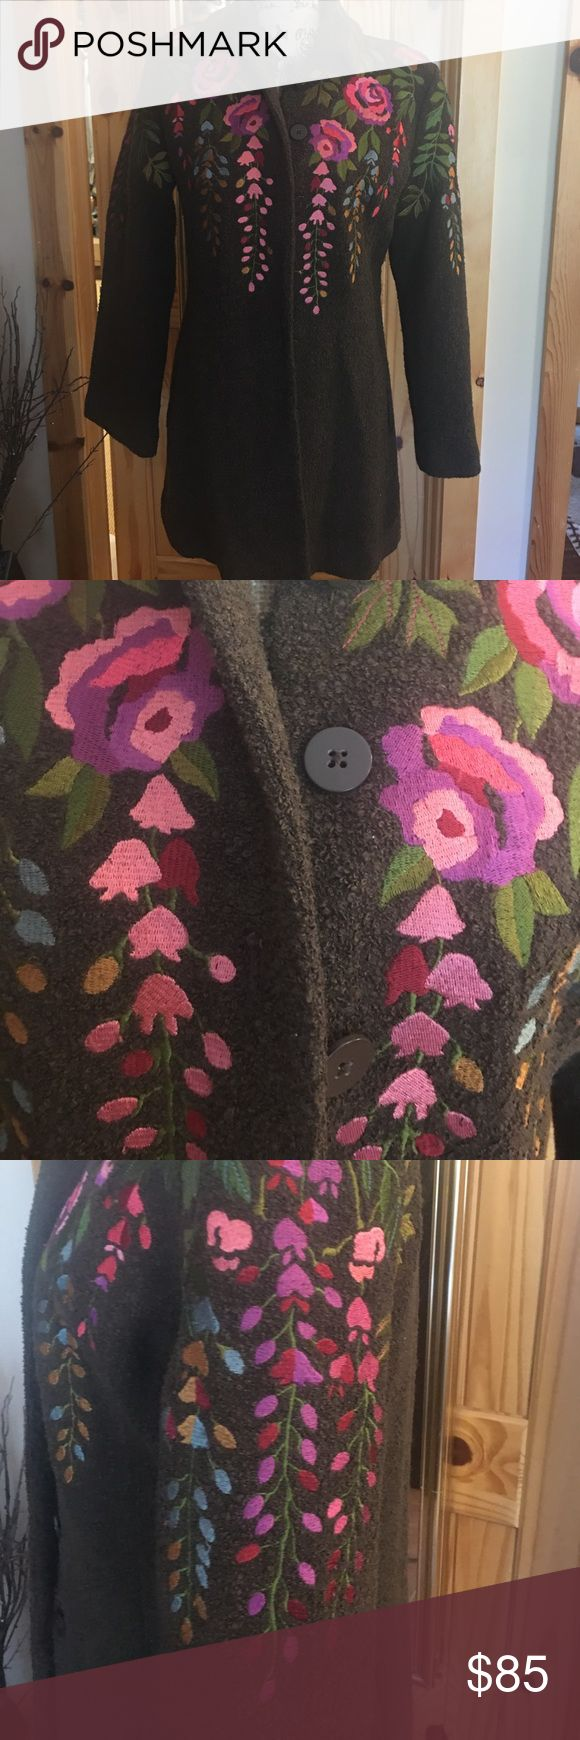 Lined  beautiful coat by Lois Dell'olio Lined coat with beautiful embroidery all over. See pics  you will get lots of compliments and will not find this in stores. Louis Dell'olio Jackets & Coats